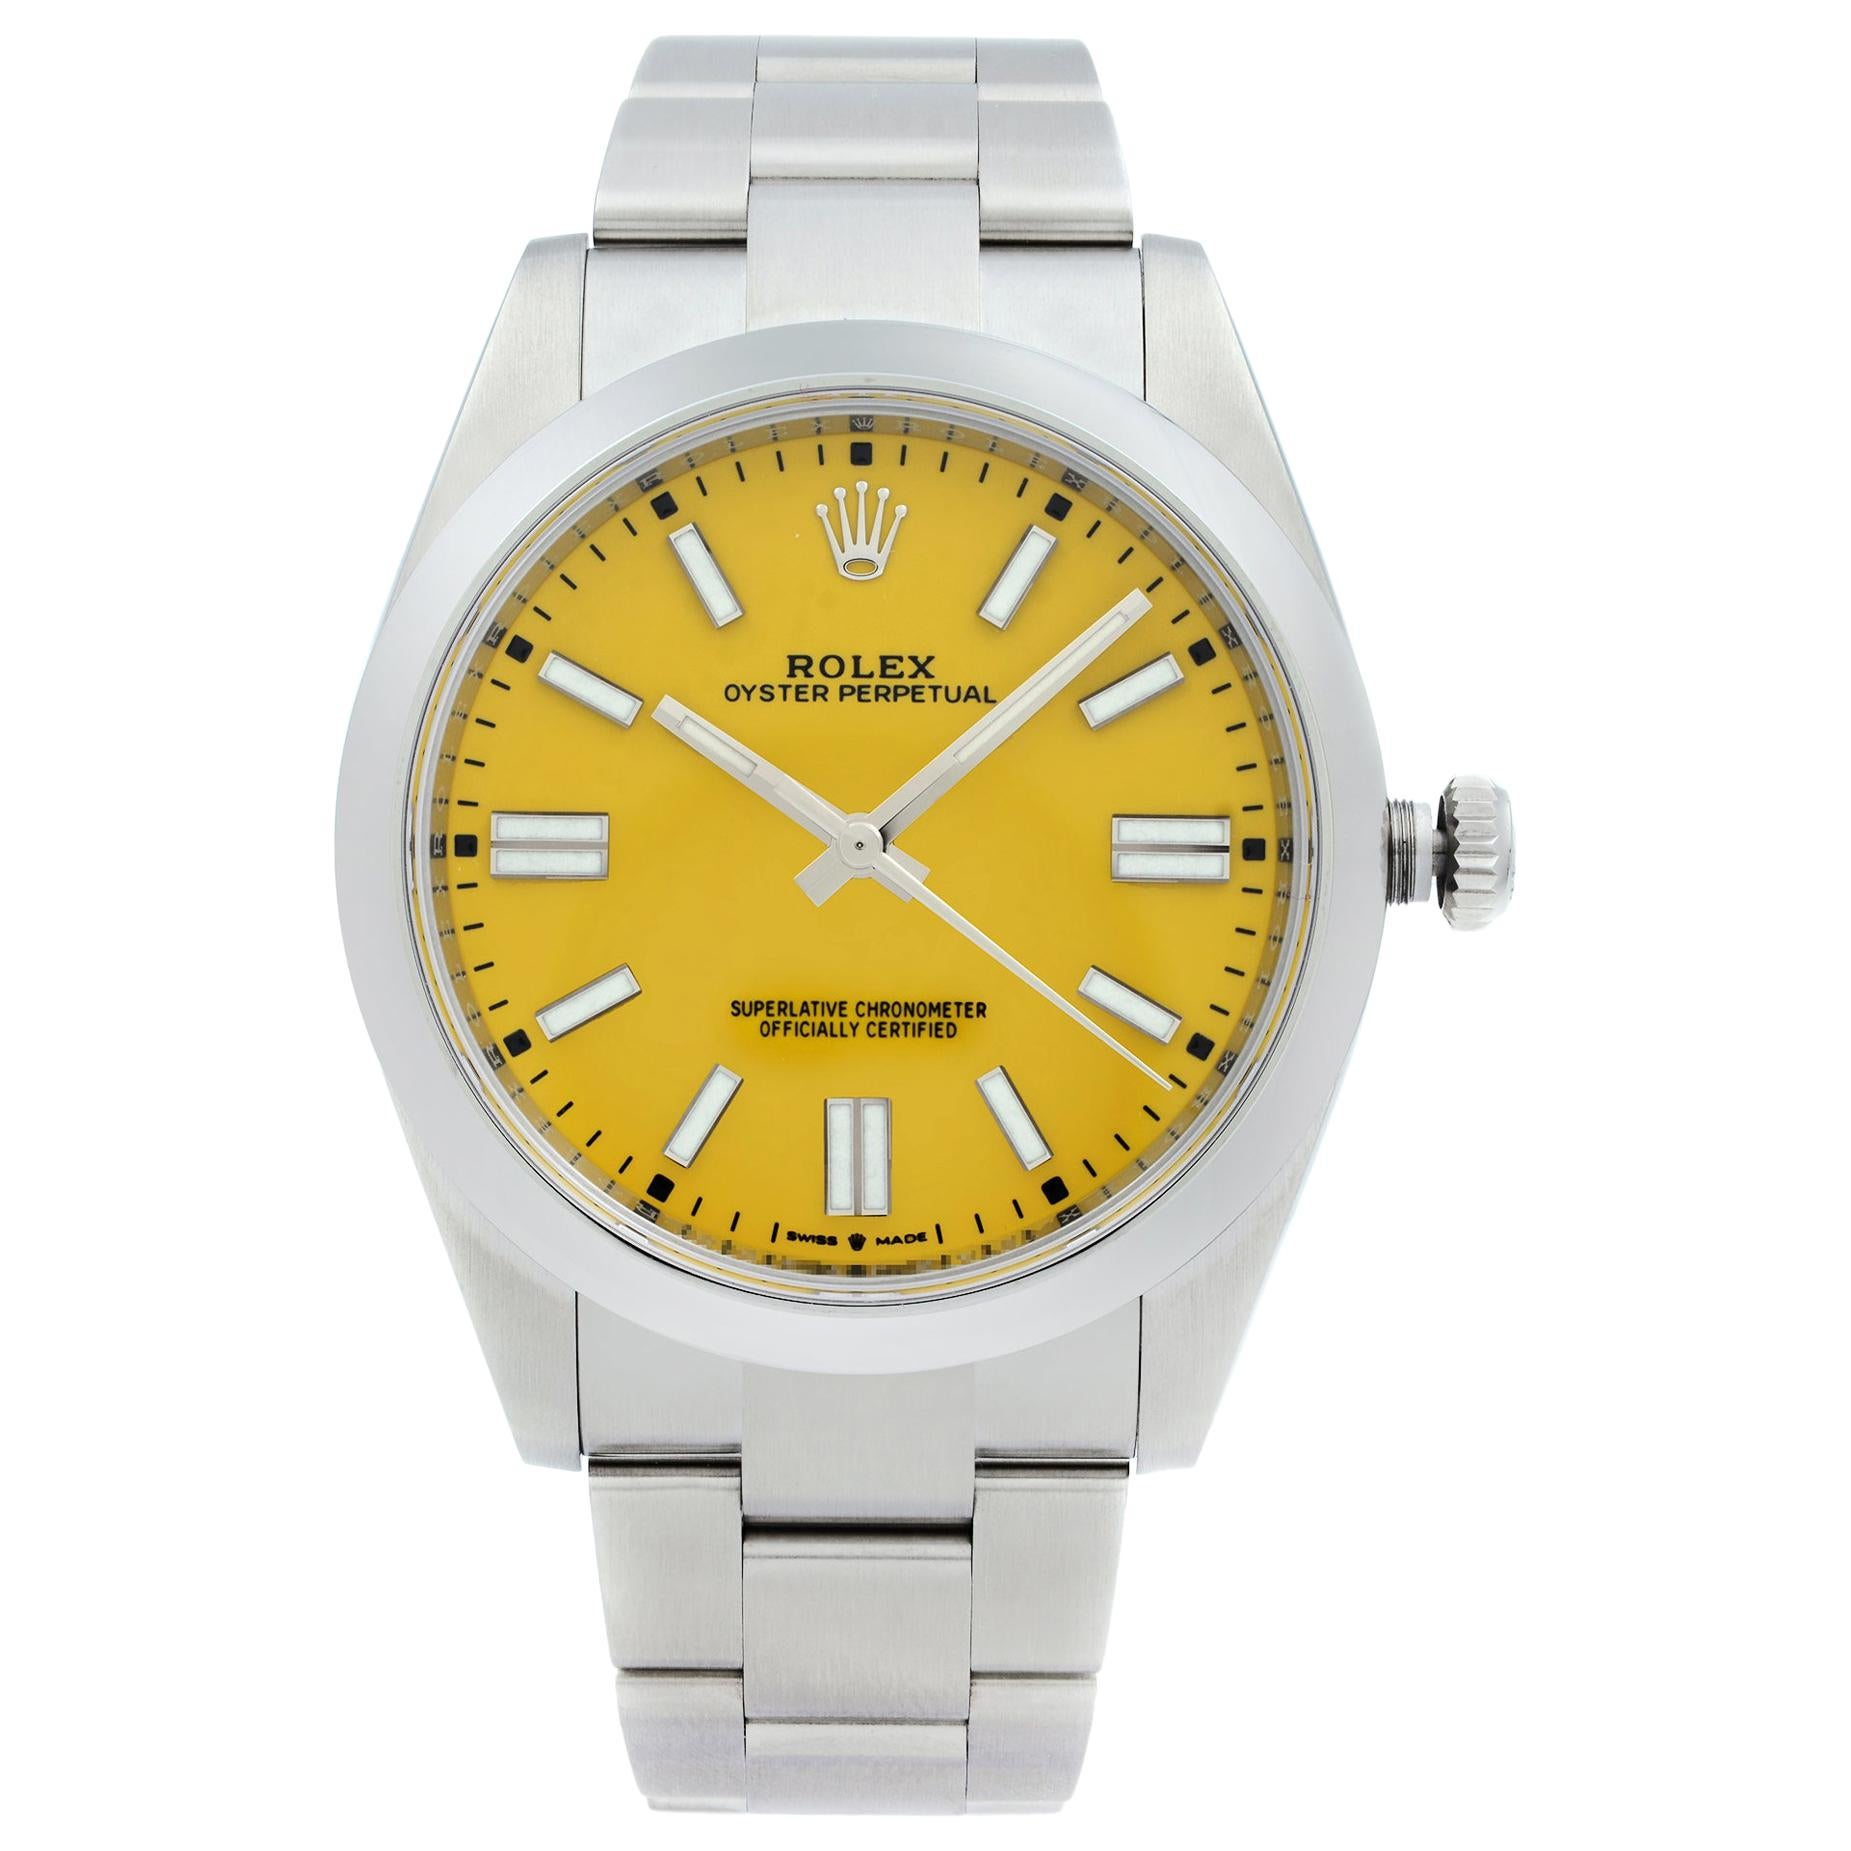 Rolex Oyster Perpetual No Date Steel Yellow Dial Automatic Men's Watch 124300